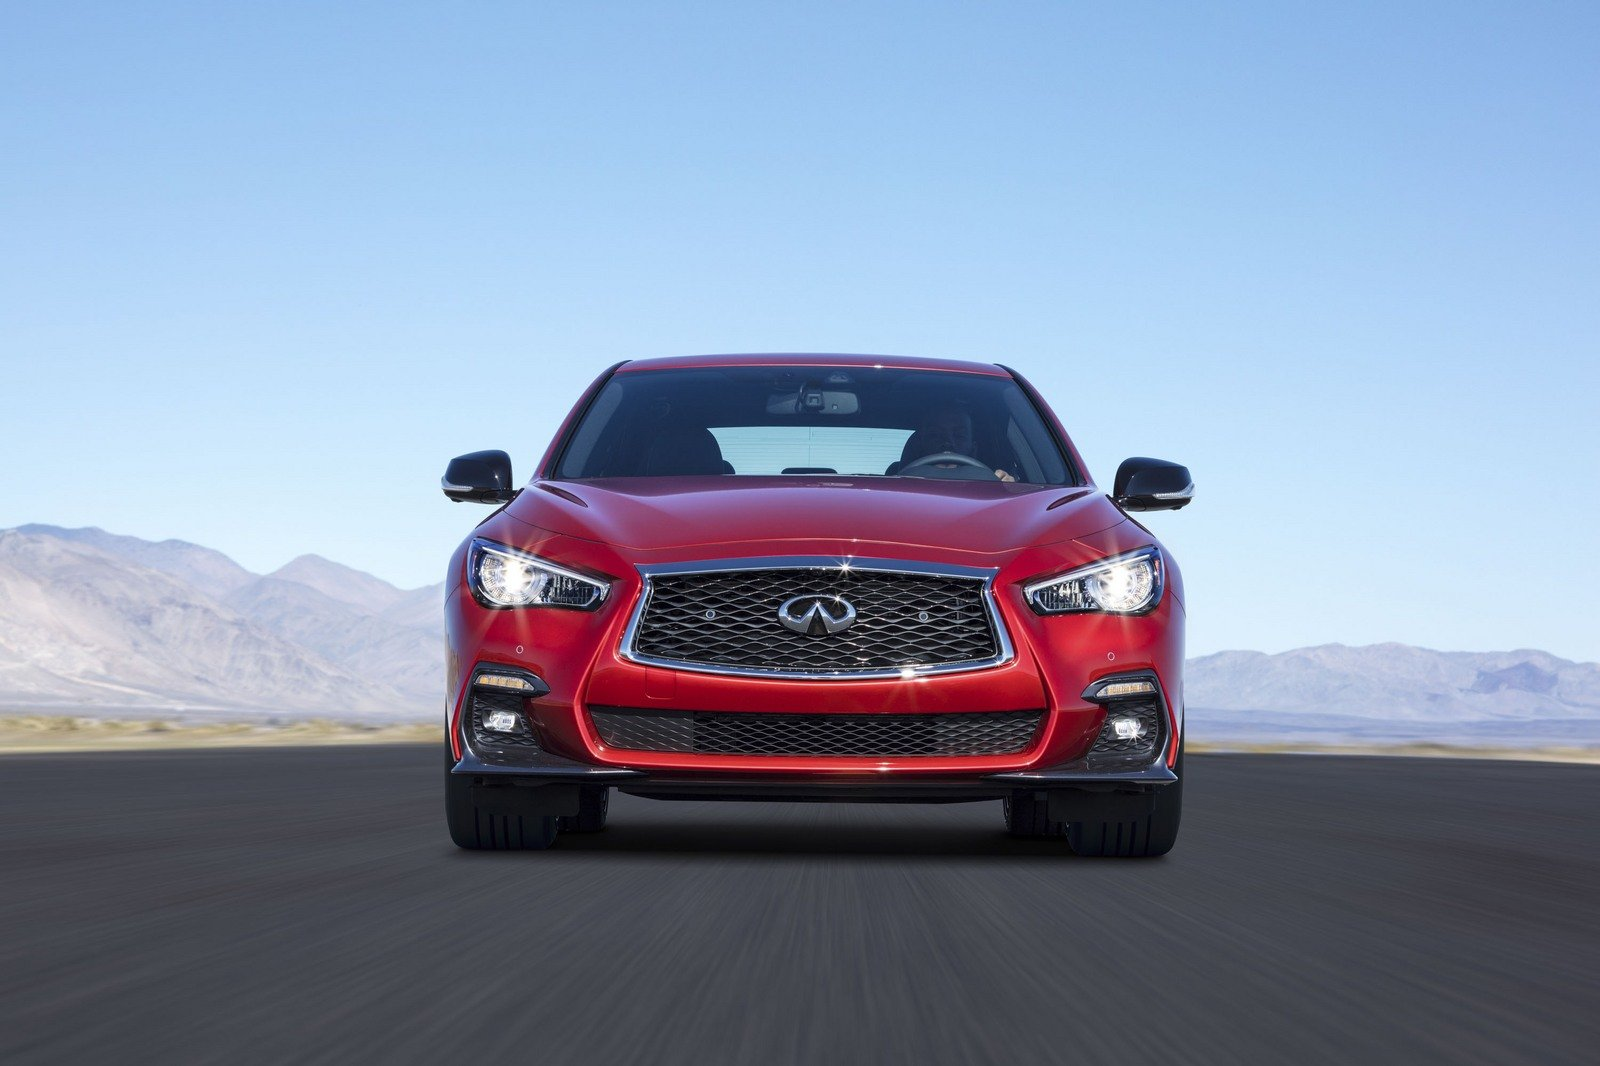 2018 infiniti q50 picture 708083 car review top speed. Black Bedroom Furniture Sets. Home Design Ideas